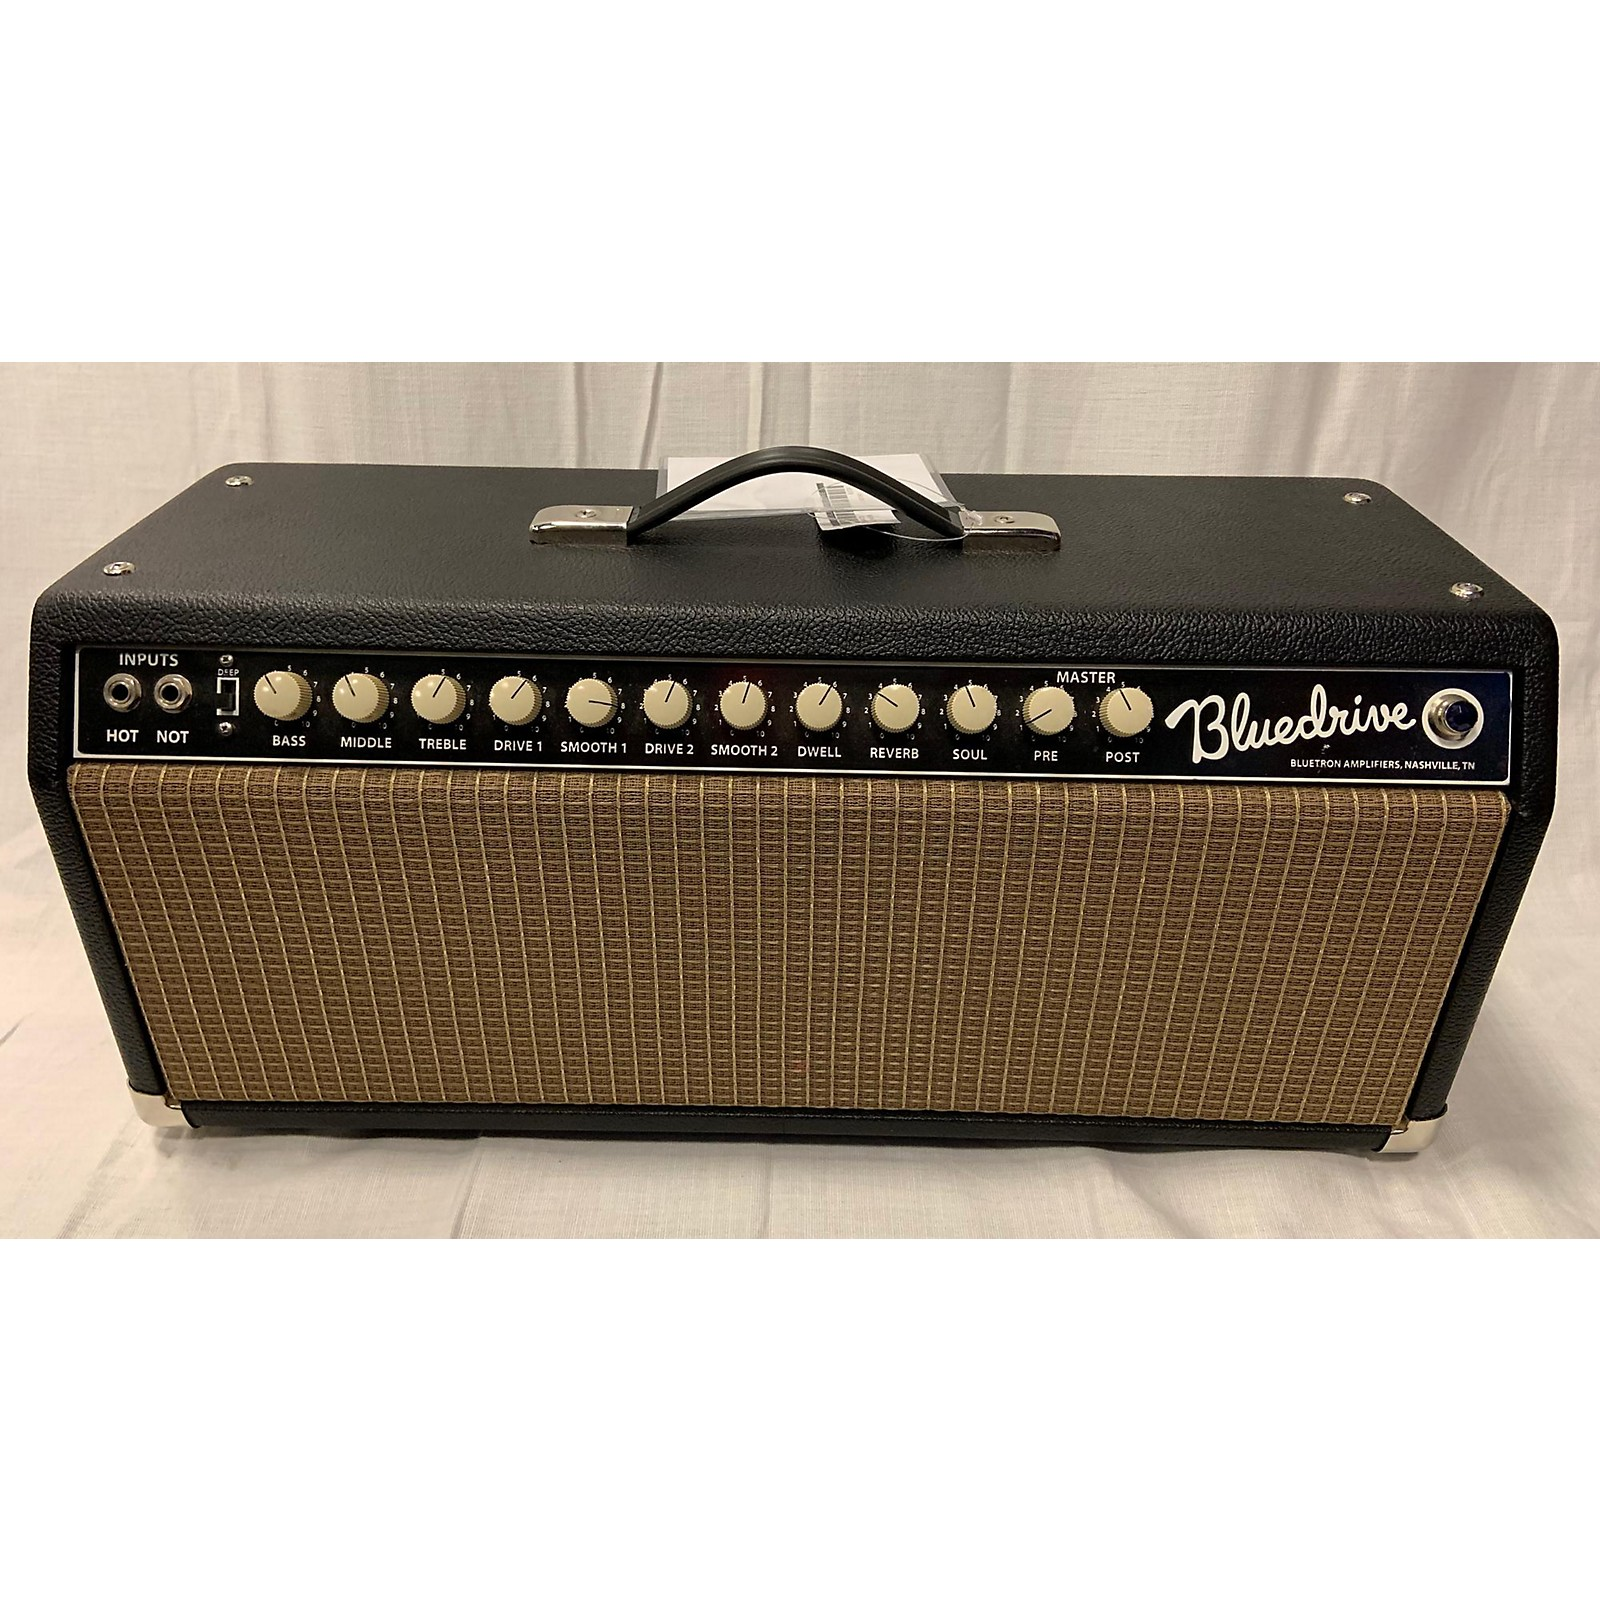 In Store Used Used Bluetron Bluedrive Tube Guitar Amp Head